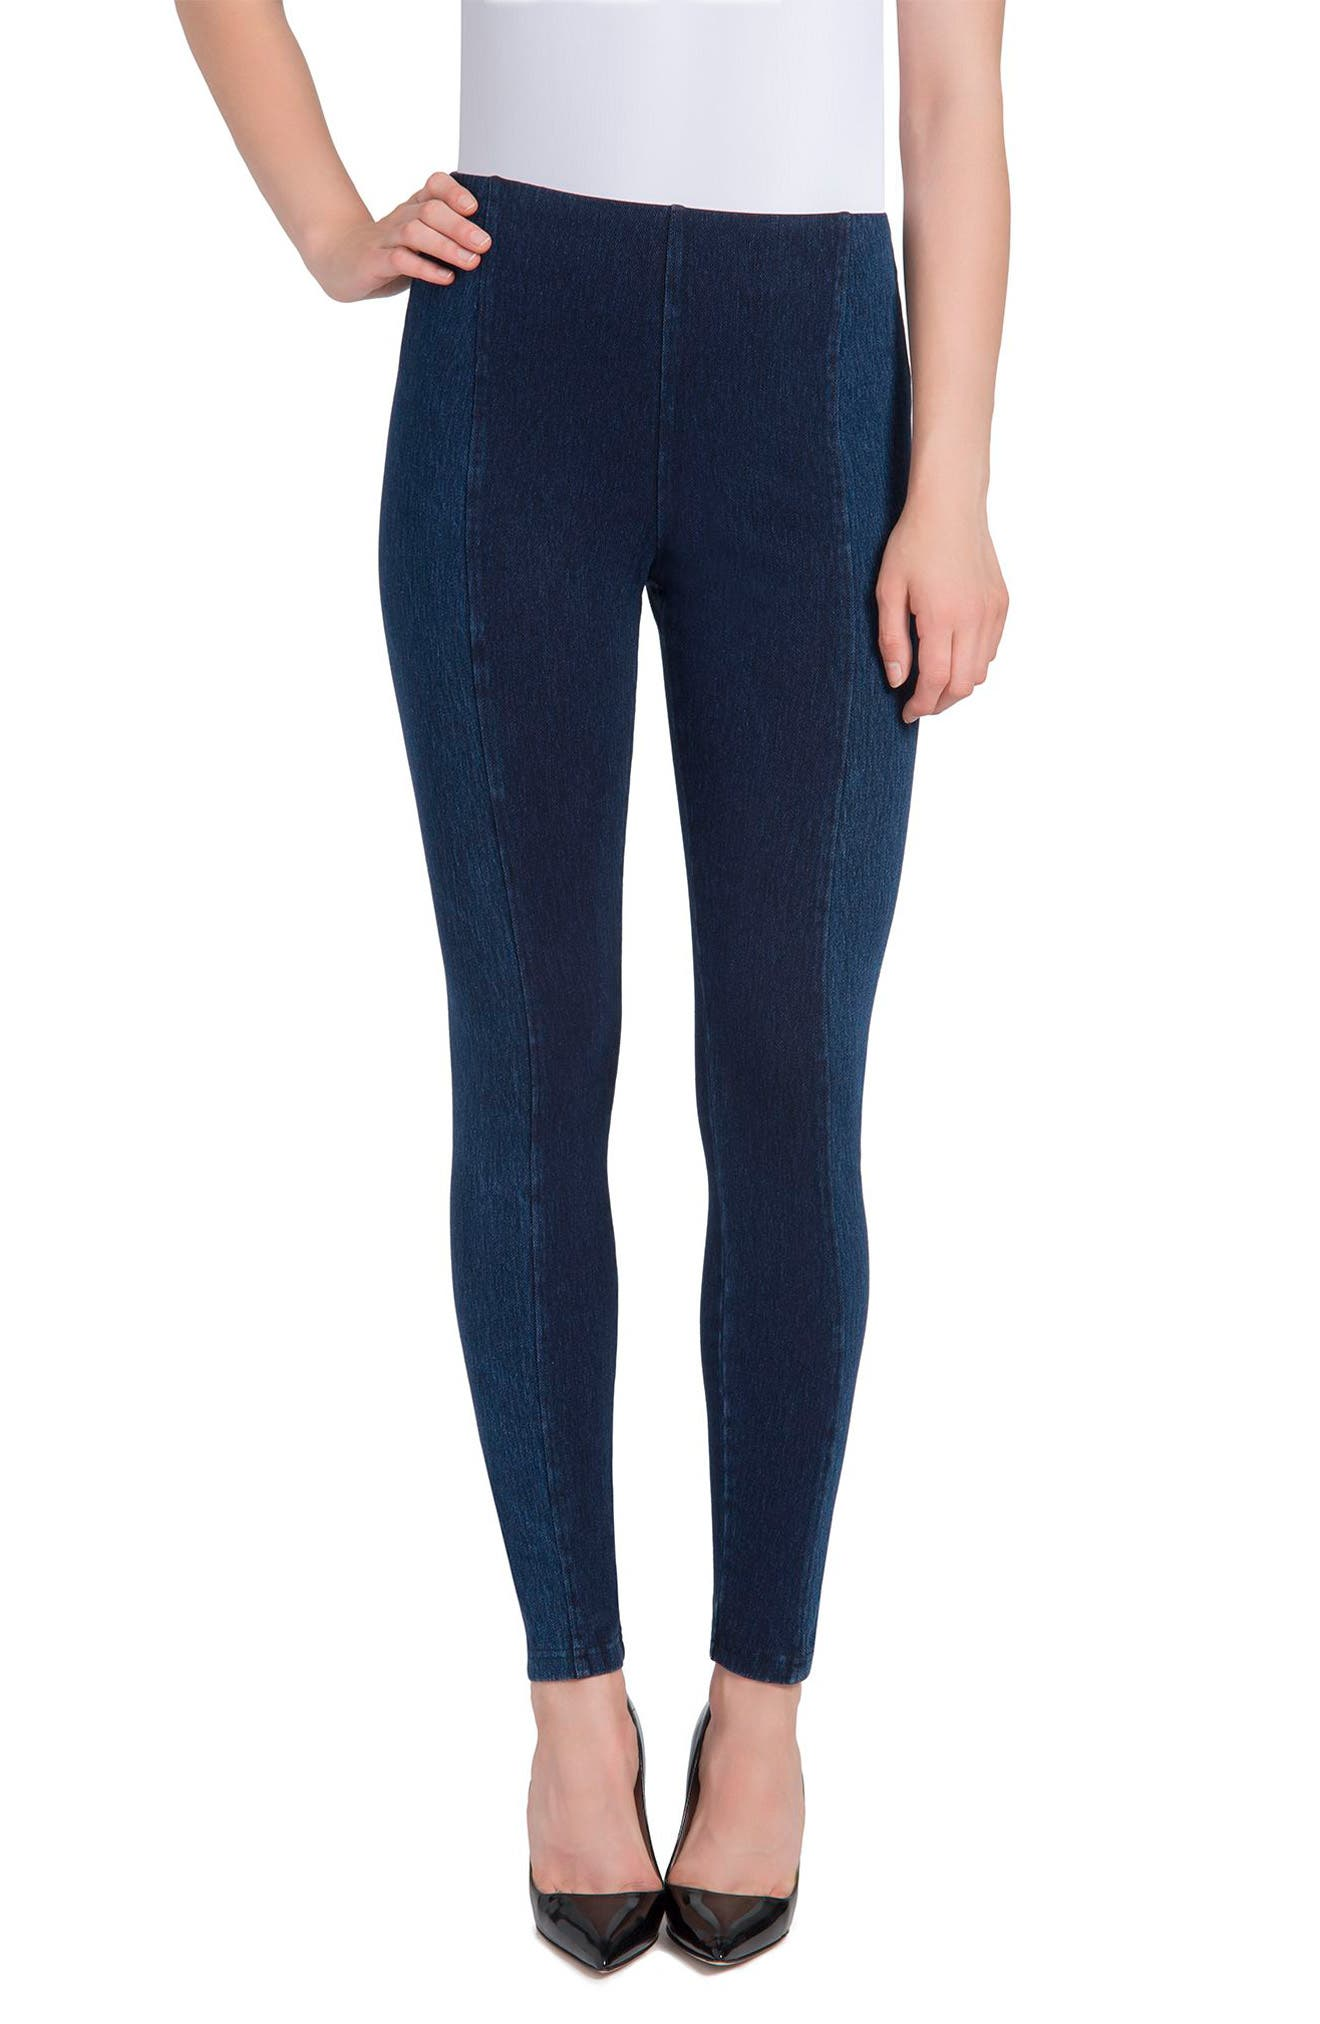 Lyssé Marley Denim Leggings